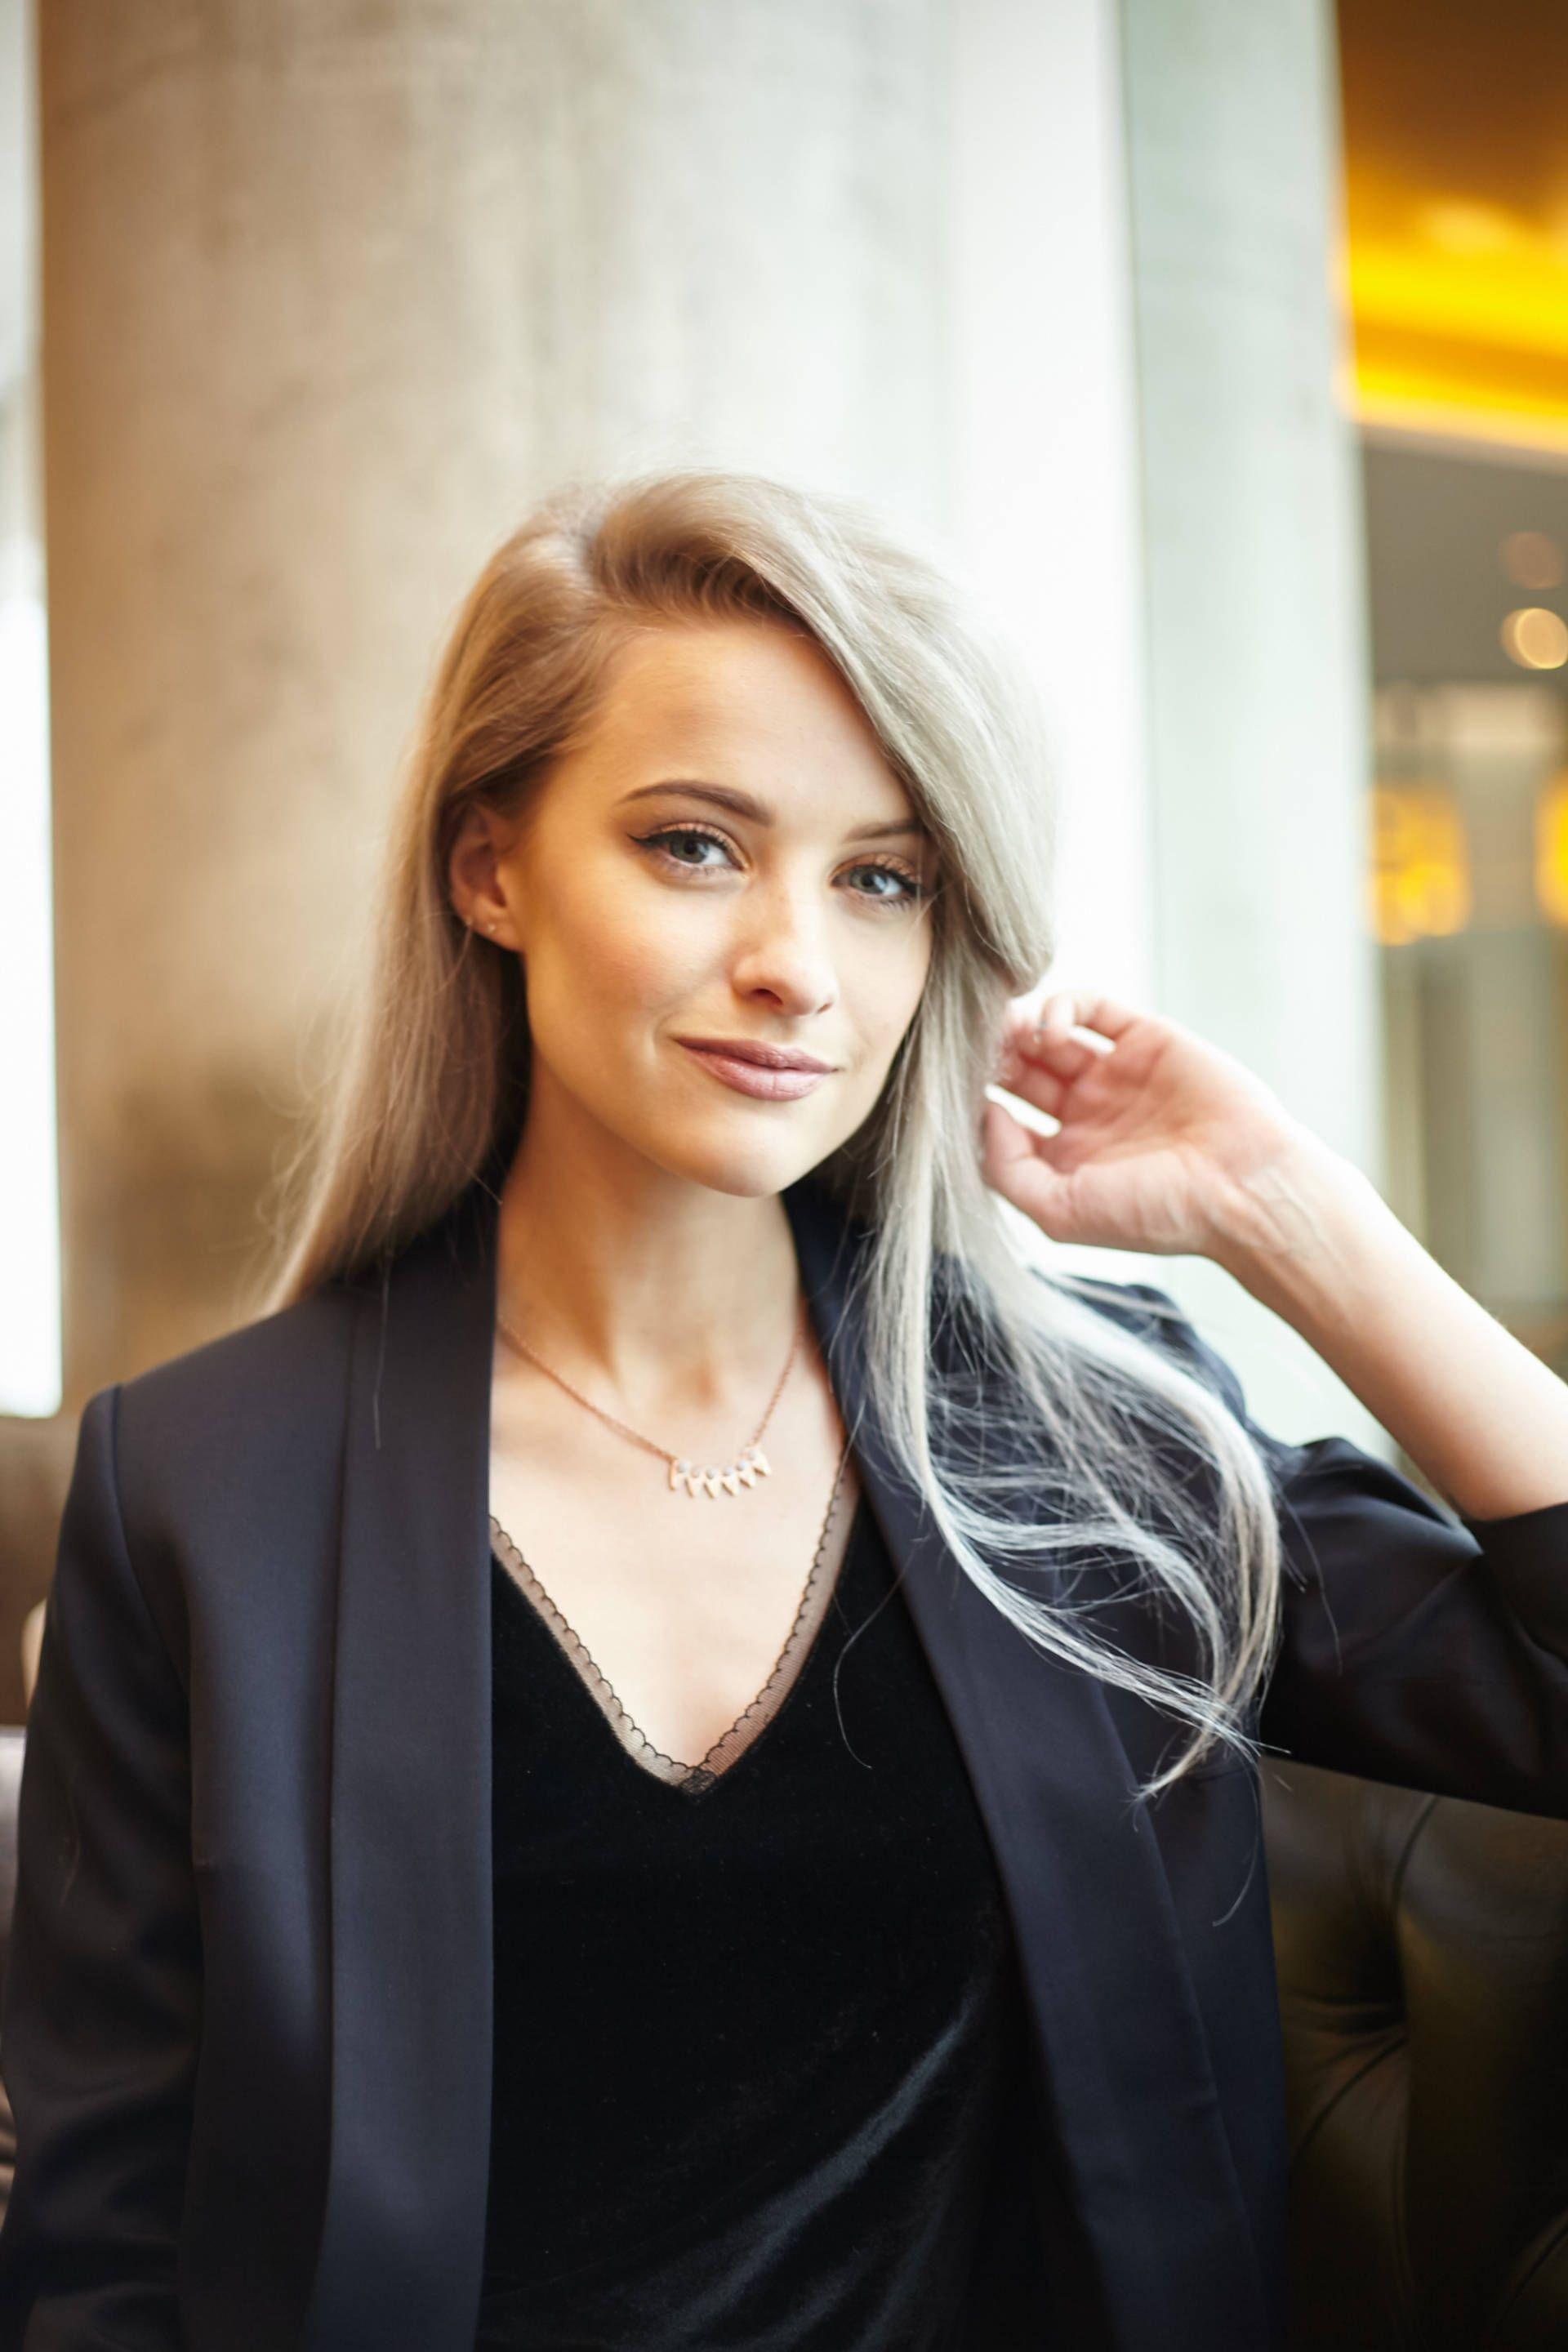 42f219fb5b Four Christmas Party Outfit Ideas - Inthefrow